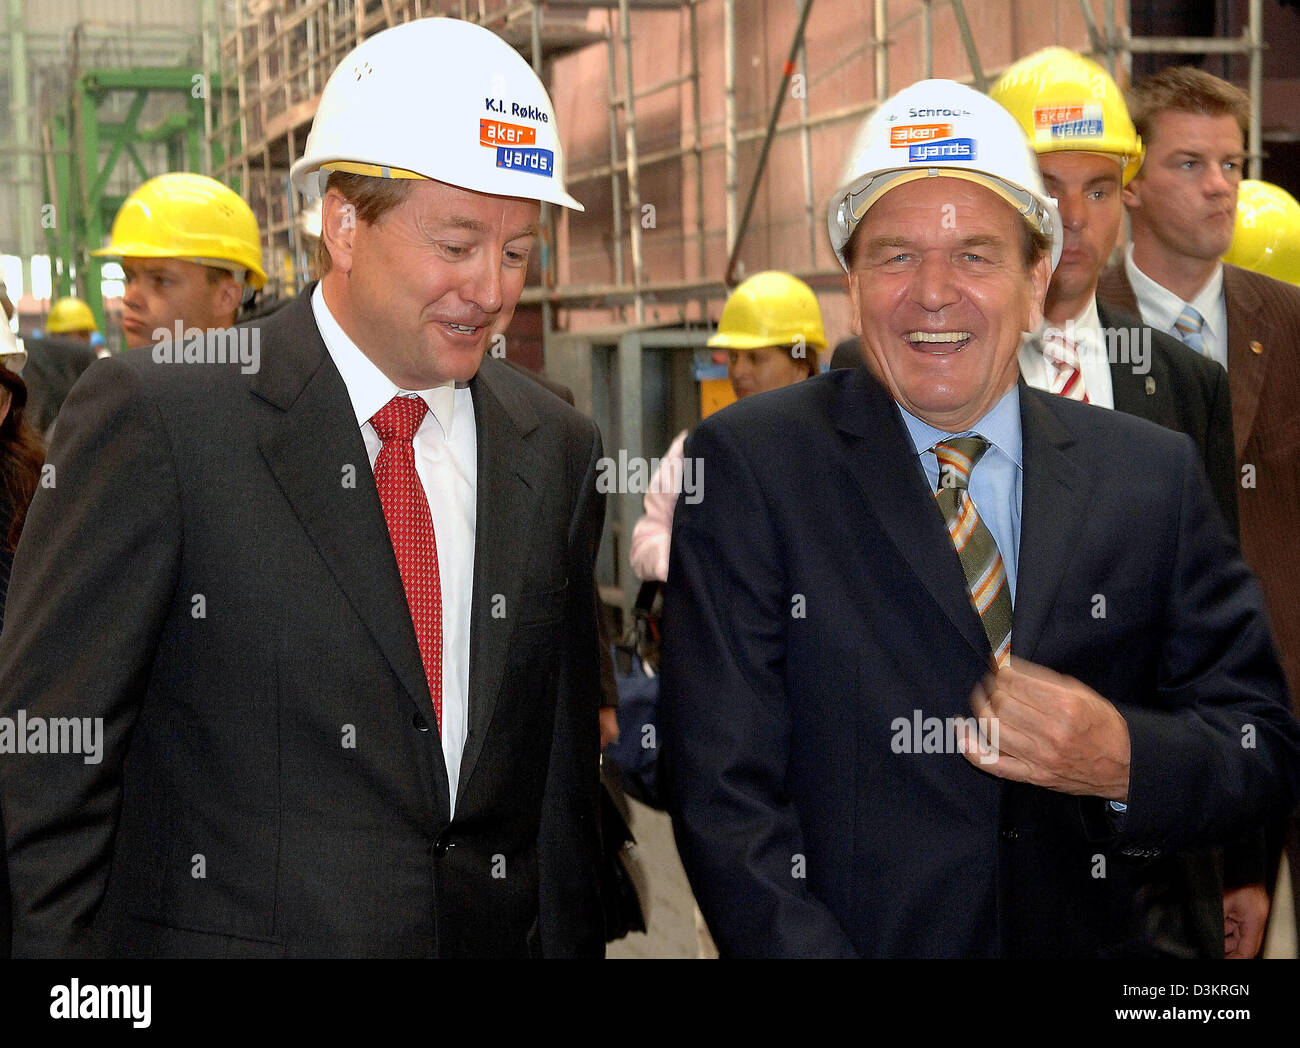 The picture shows German Federal Chancellor Gerhard Schroeder (R) and Norwegian main owner of Aker Yards ASA Kjell - Stock Image